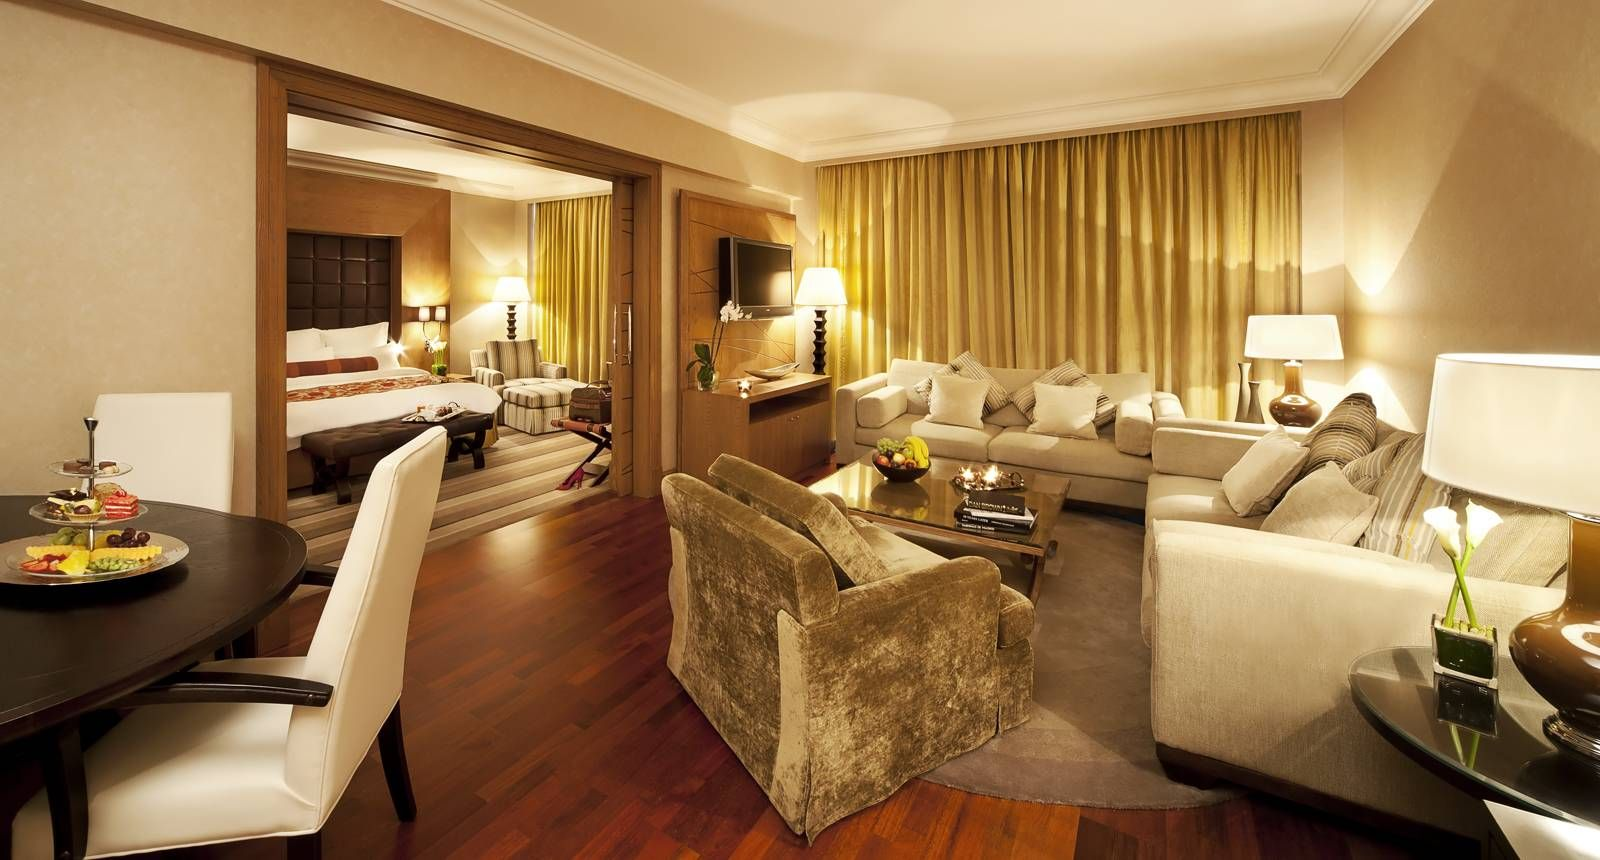 Rooms: Luxury Hotel Rooms Pictures